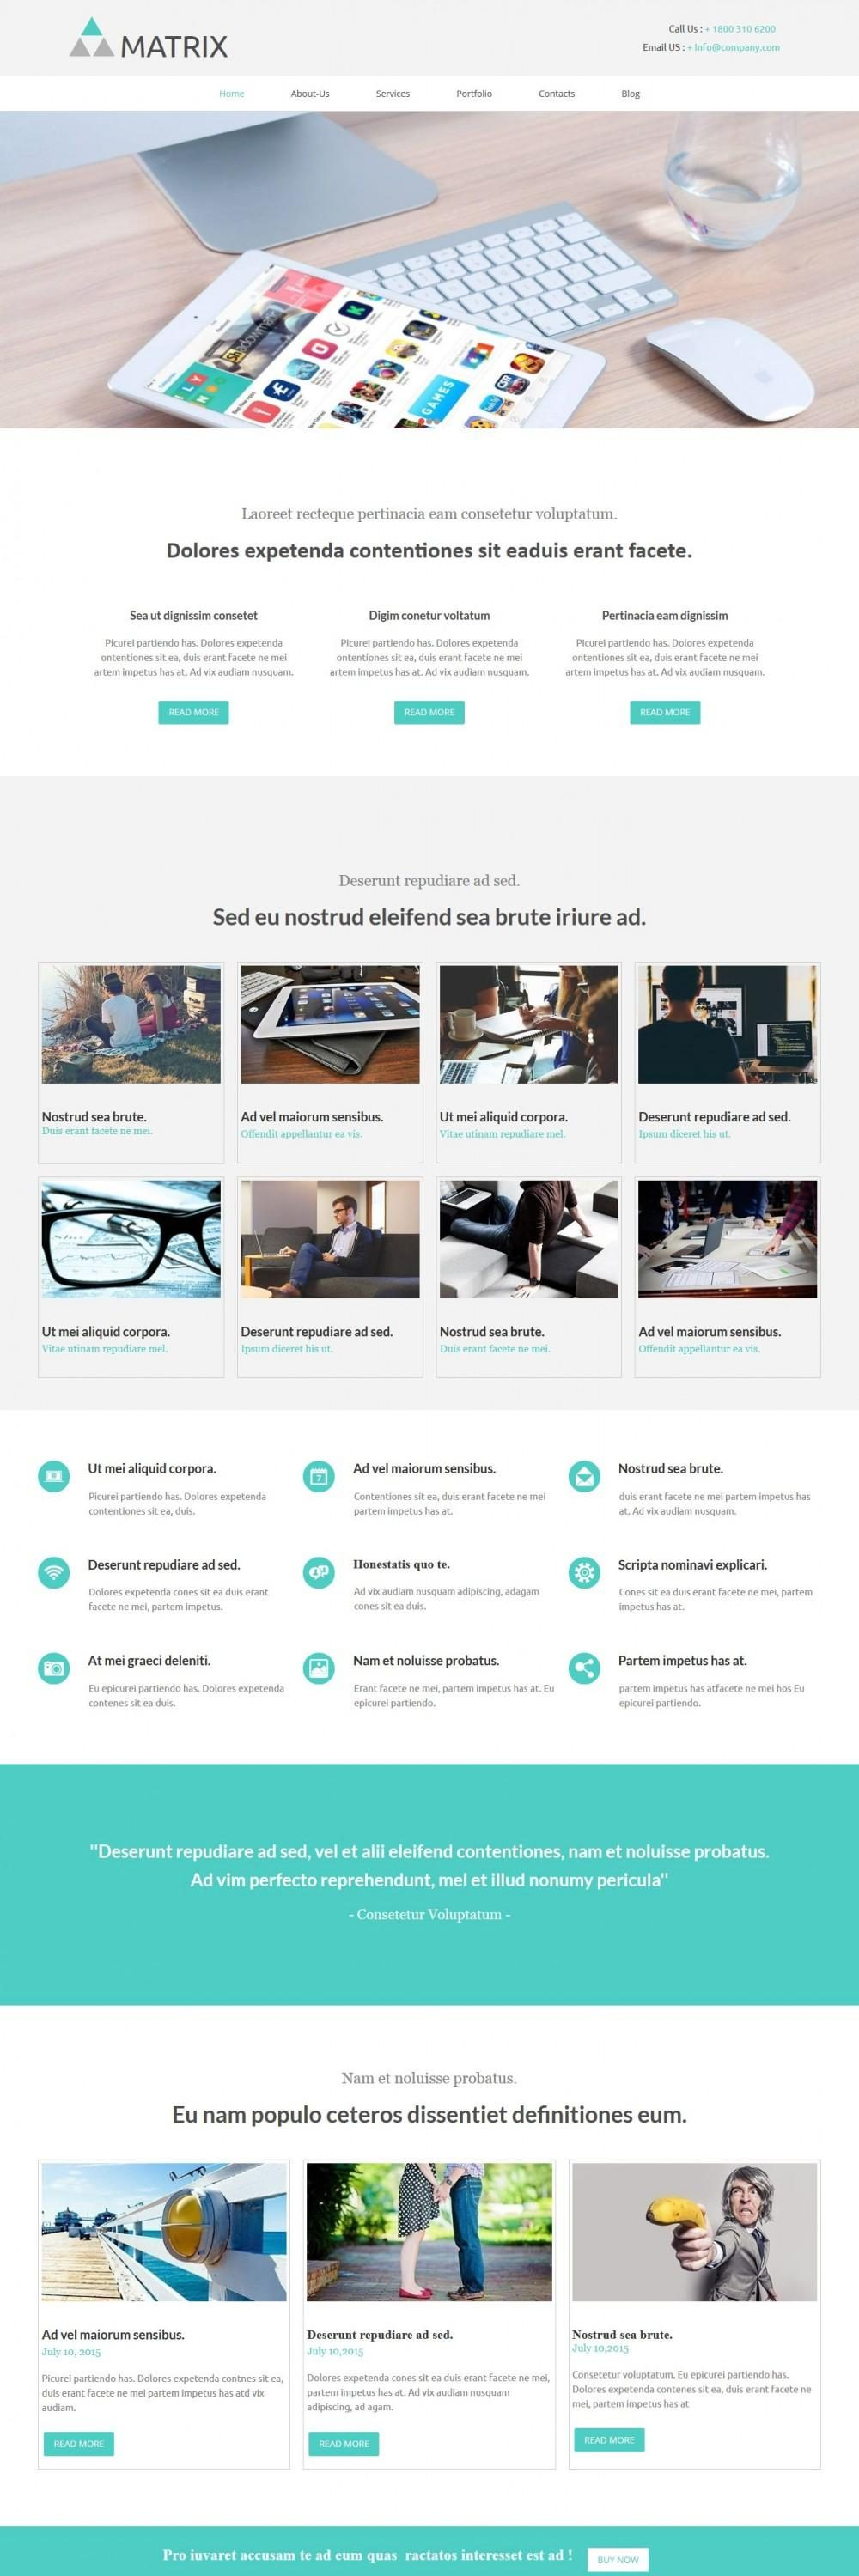 Matrix - Joomla Template for Web Design/Studio Company